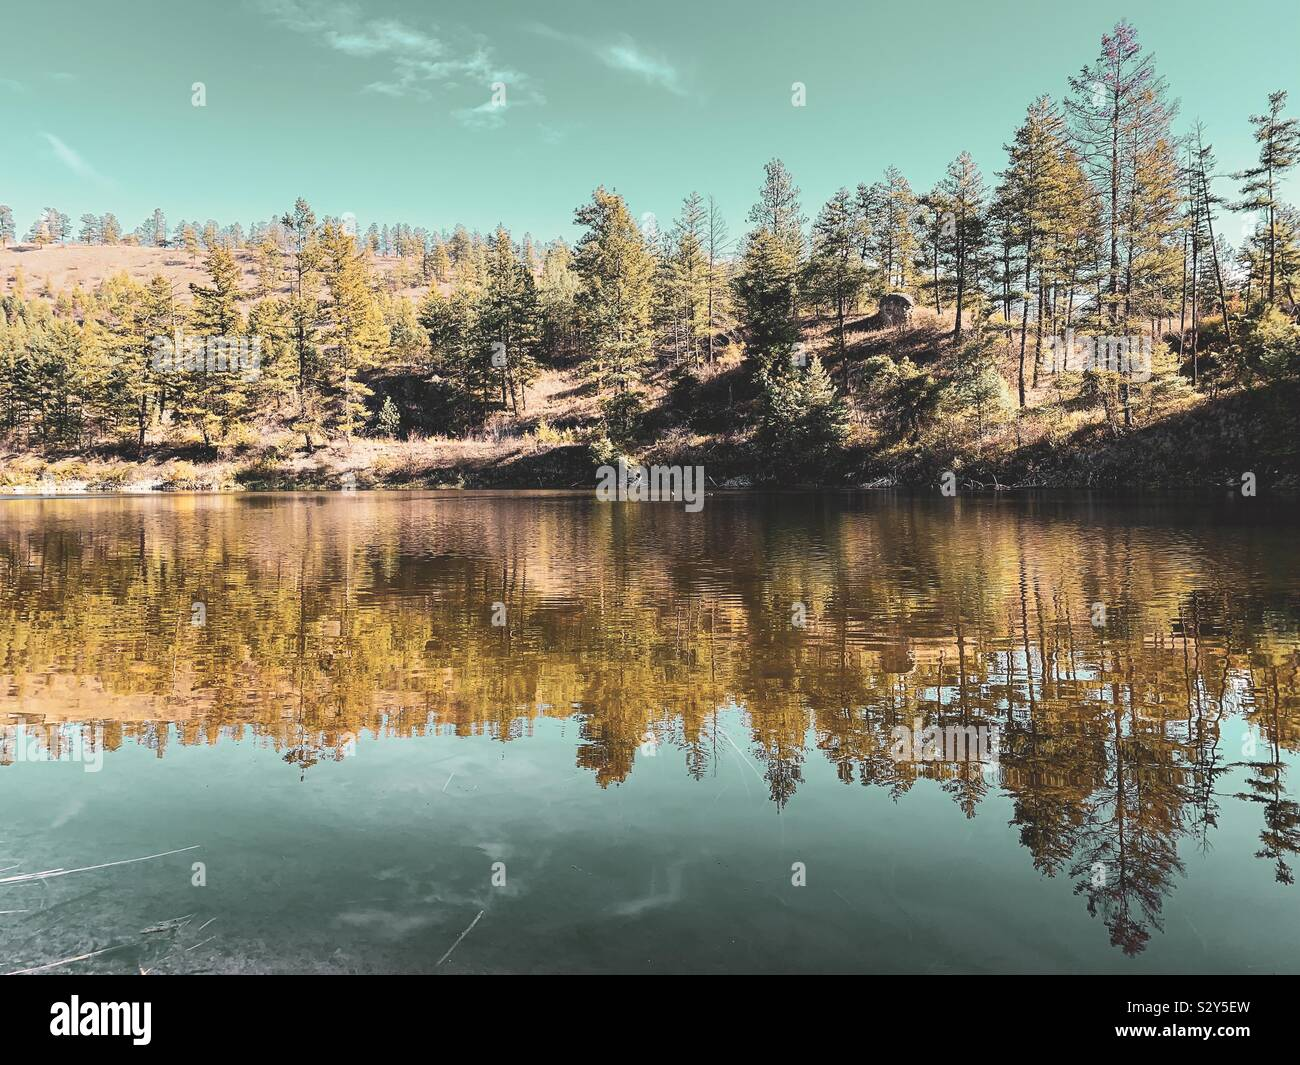 Autumn landscape with trees and sky reflecting in lake. Stock Photo